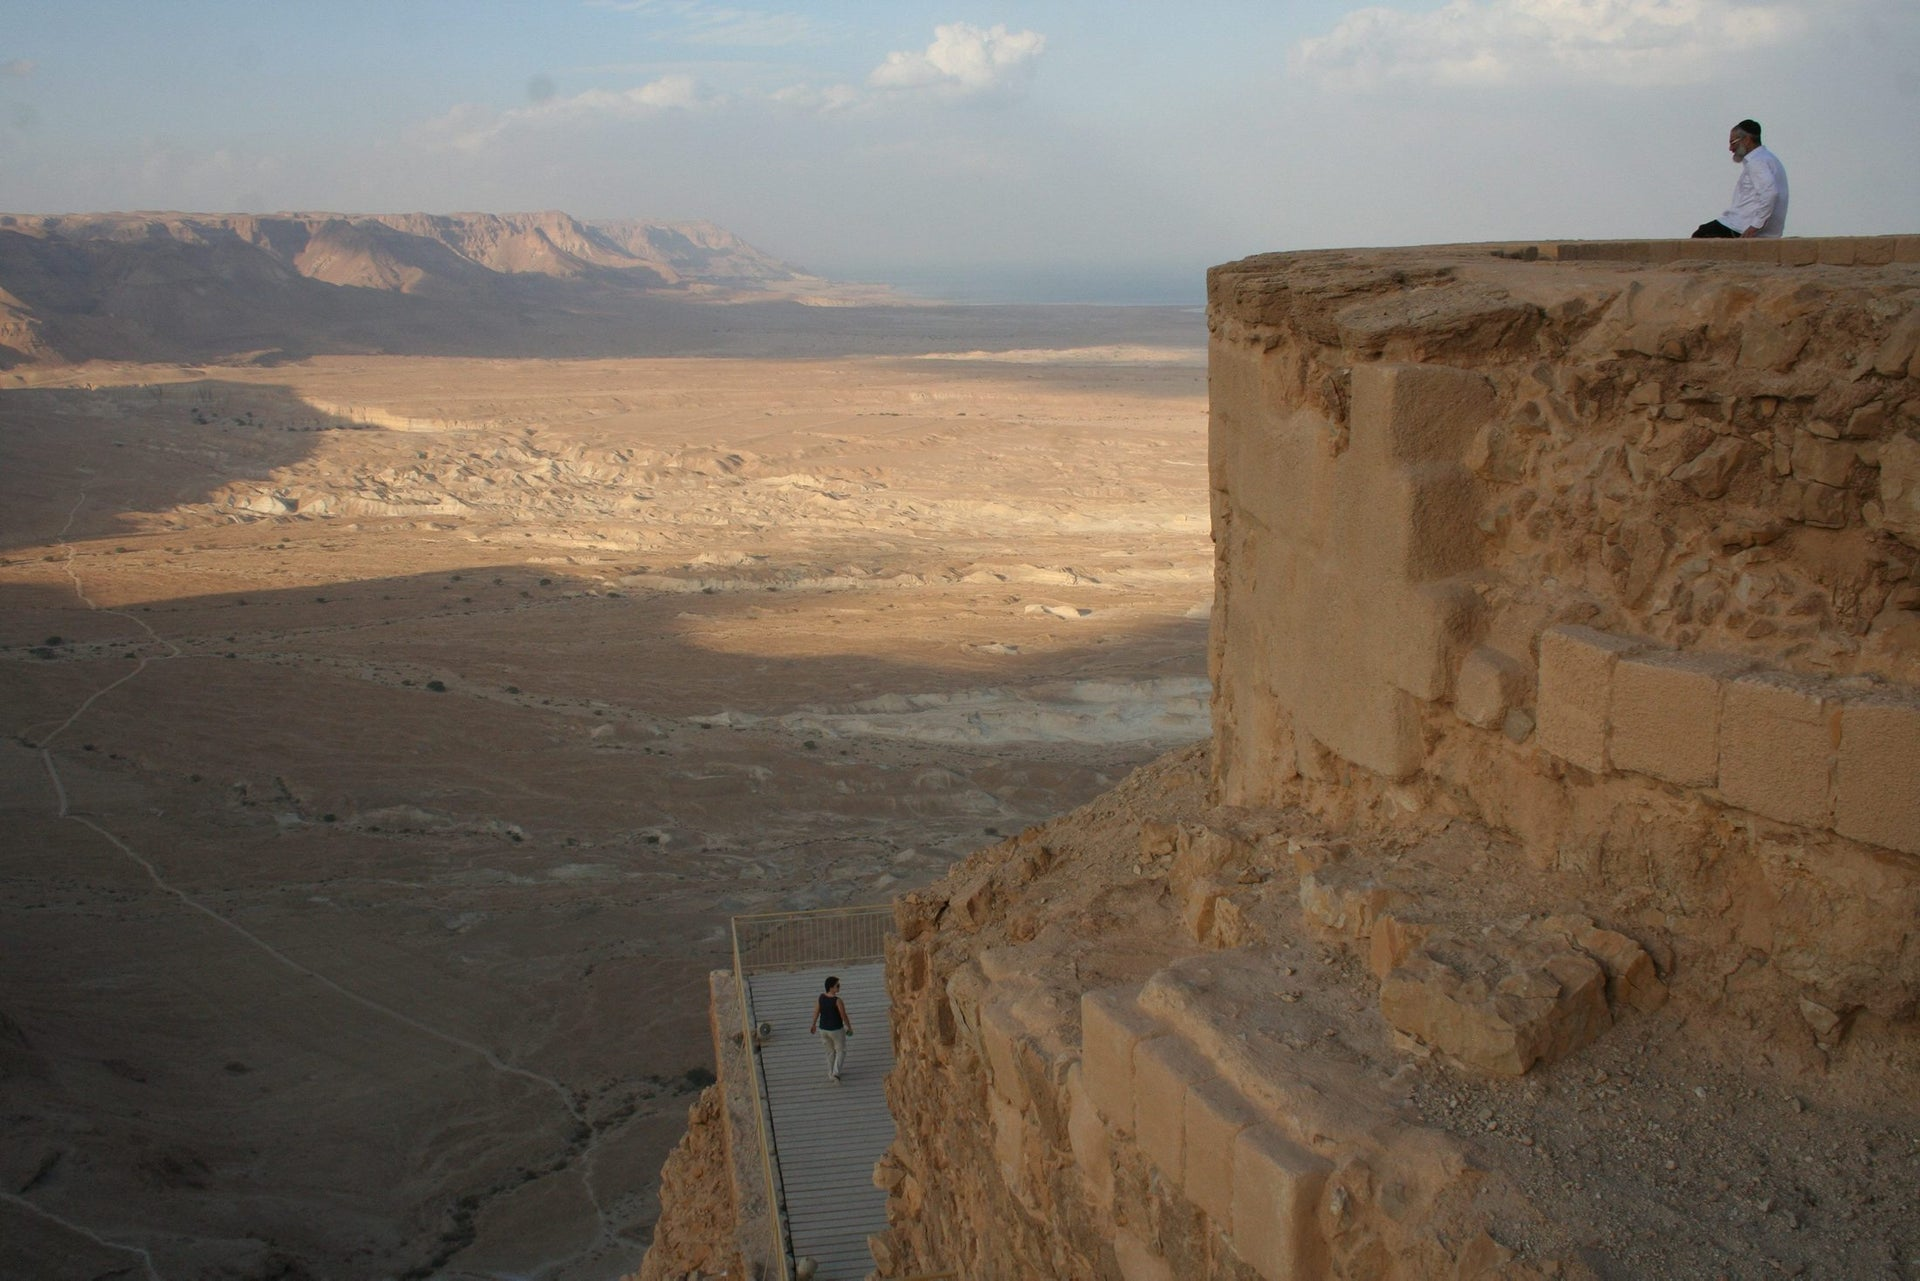 Masada: The view of the surrounding desert from the top. Picture shows a man sitting on the top of the walls looking out over the desert sprawling at the feet of the plateau.